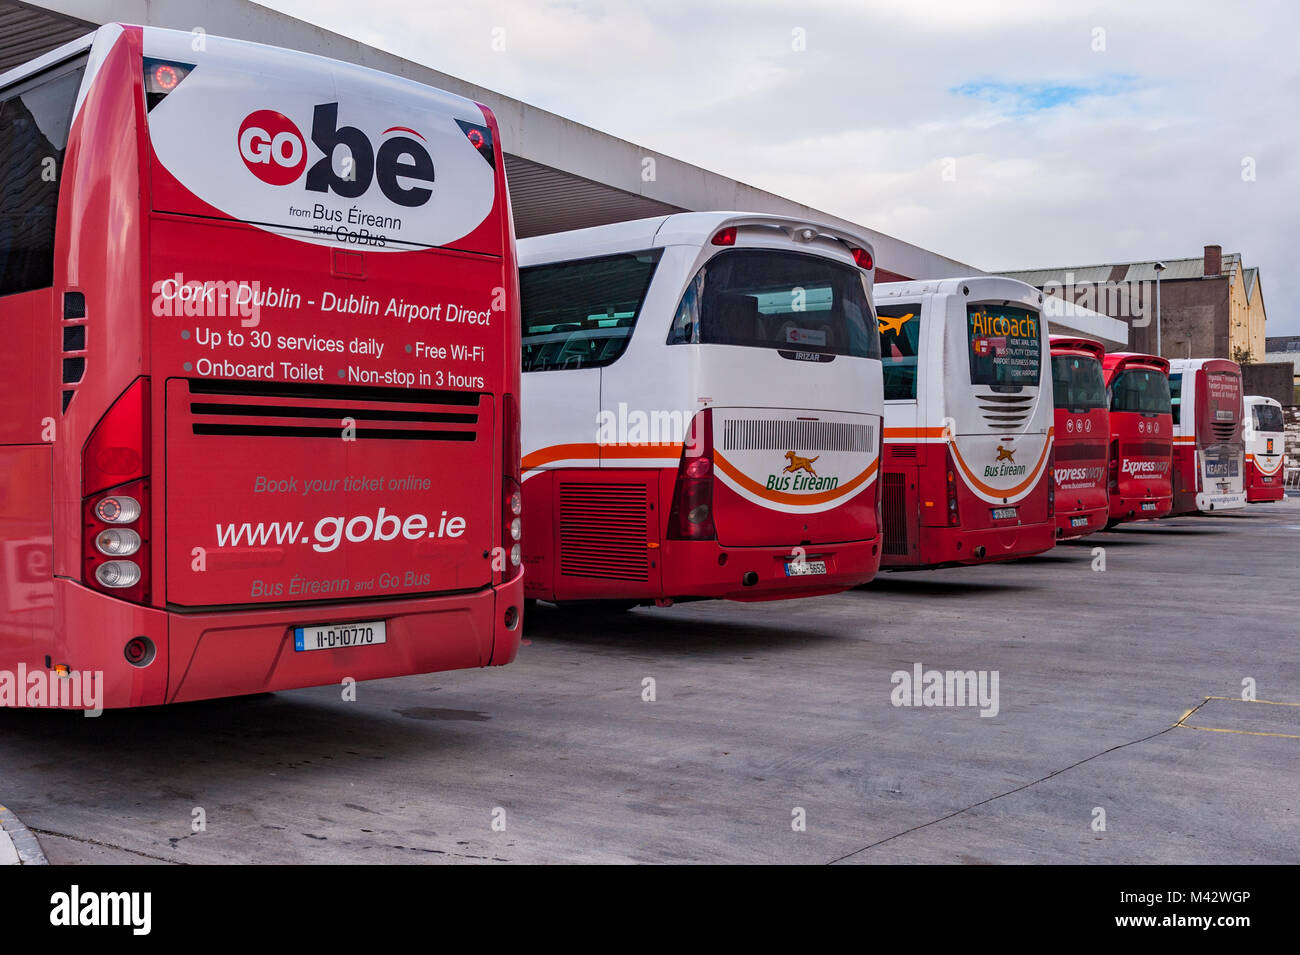 Bus Eireann buses and coaches parked at Cork Bus Station, Parnell